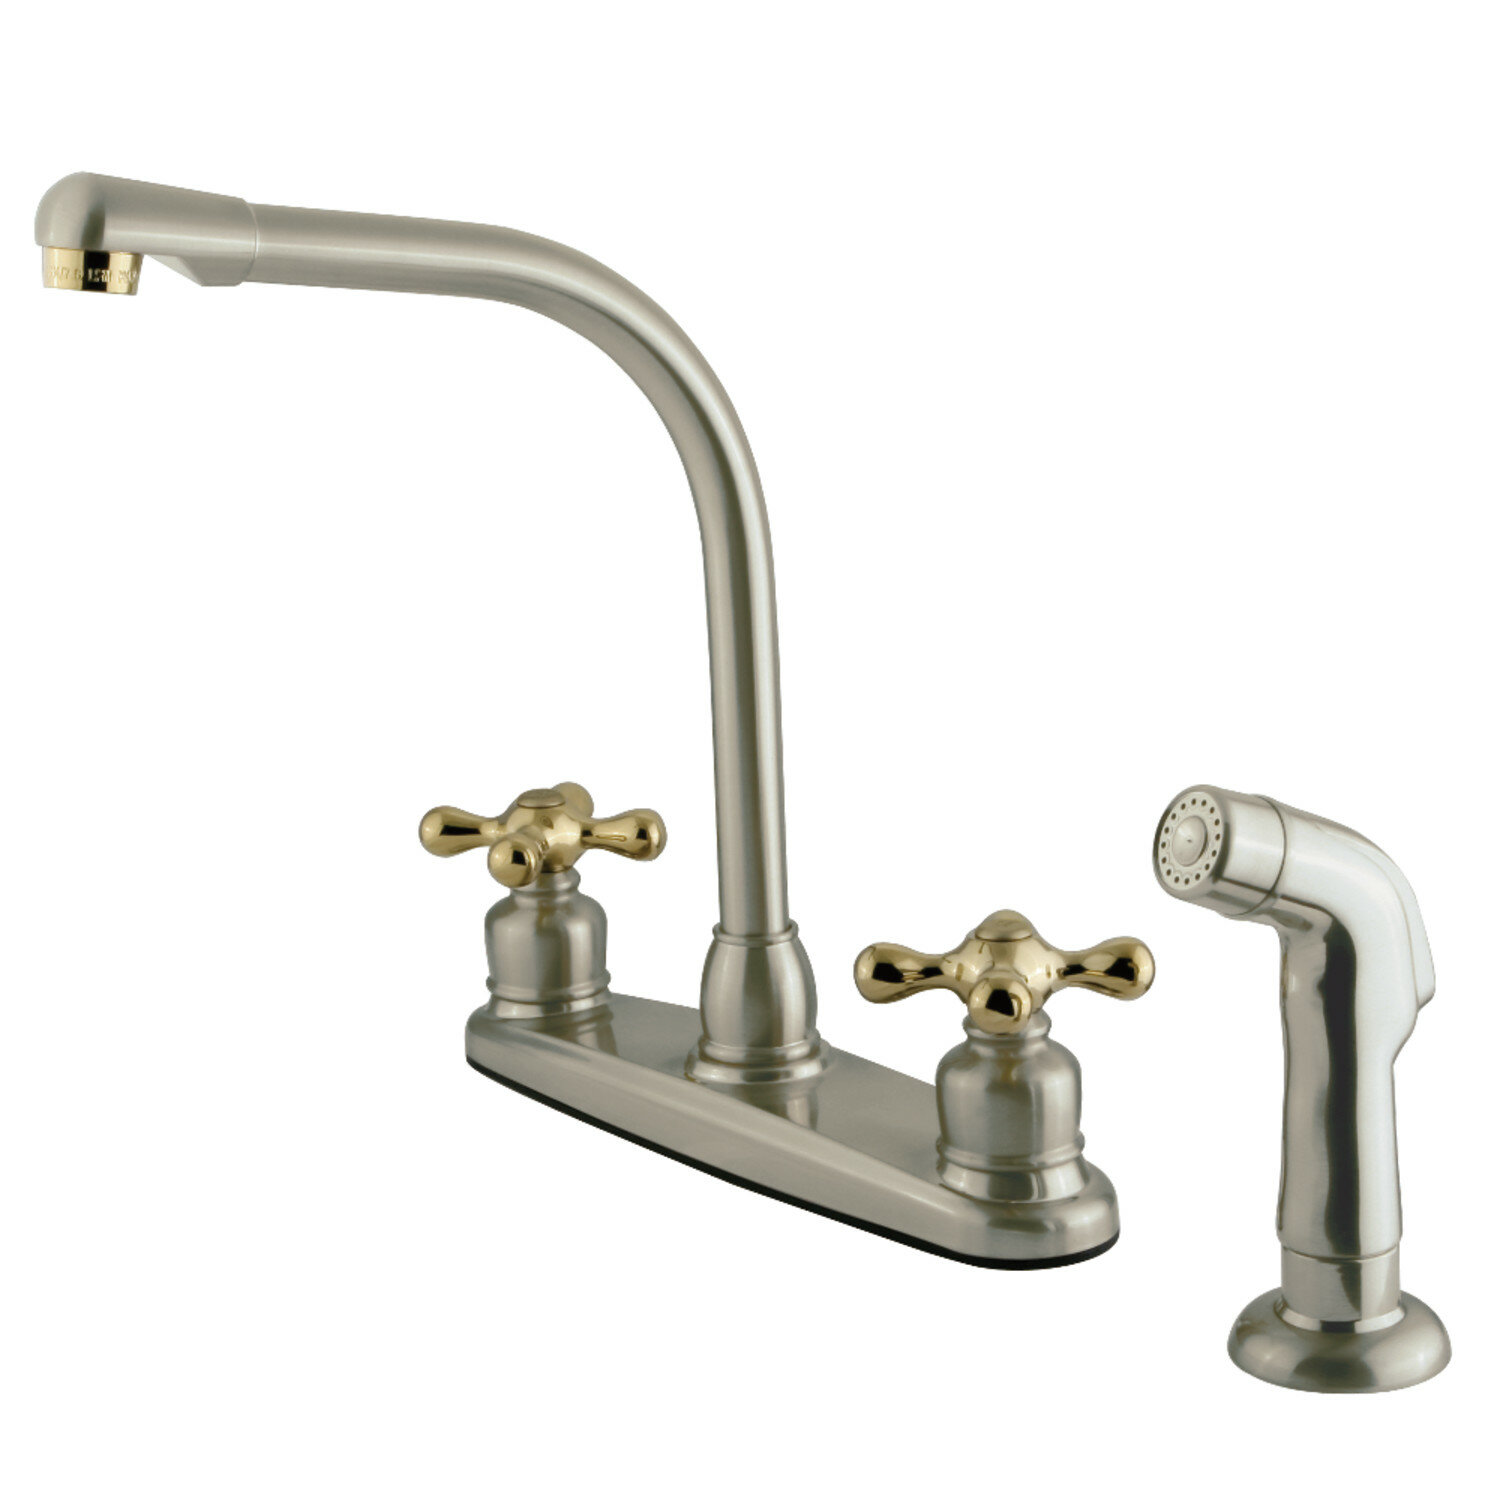 Victorian Centerset Double Handle Kitchen Faucet with Side Spray